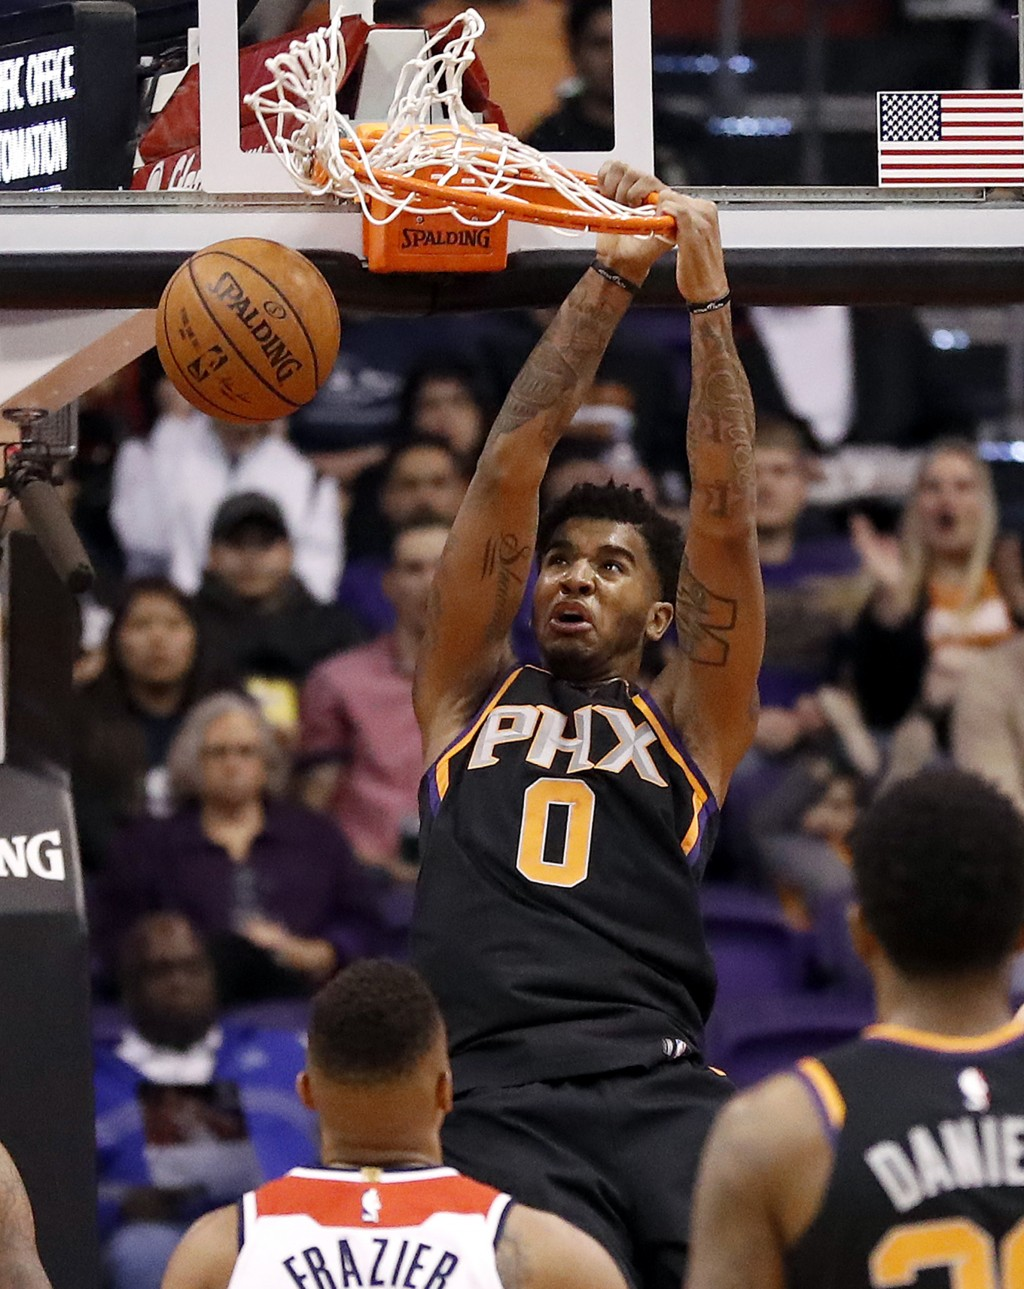 Phoenix Suns forward Marquese Chriss (0) dunks against the Washington Wizards during the first half of an NBA basketball game, Thursday, Dec. 7, 2017,